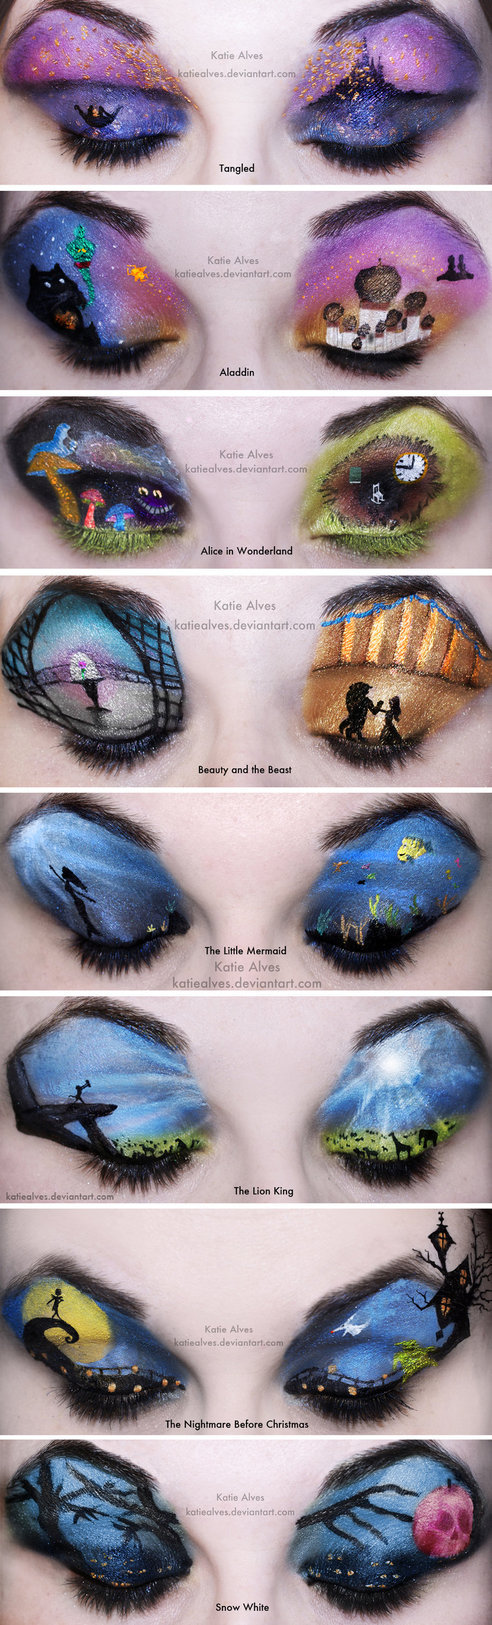 Entire_disney_make_up_collection____so_far_by_katiealves-d4lj9lt_large